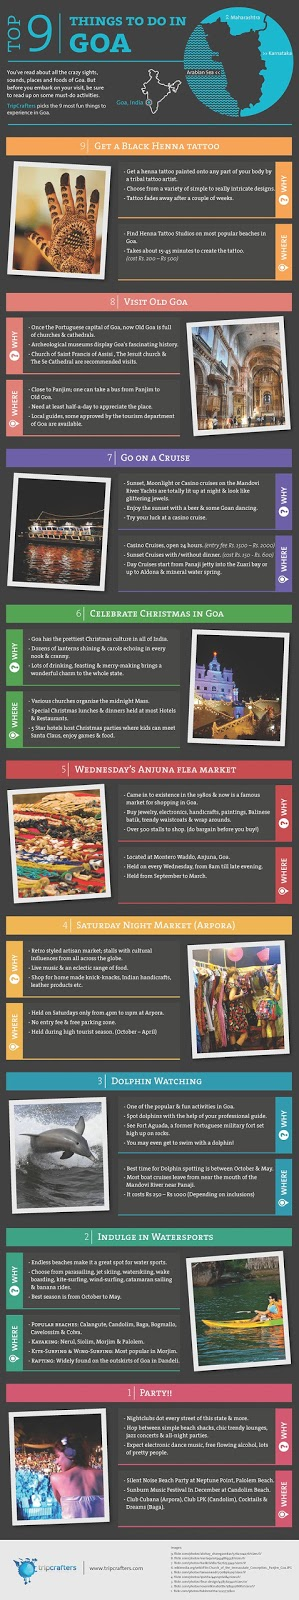 Top 9 Things to do in Goa - Infograhics -Mytravel